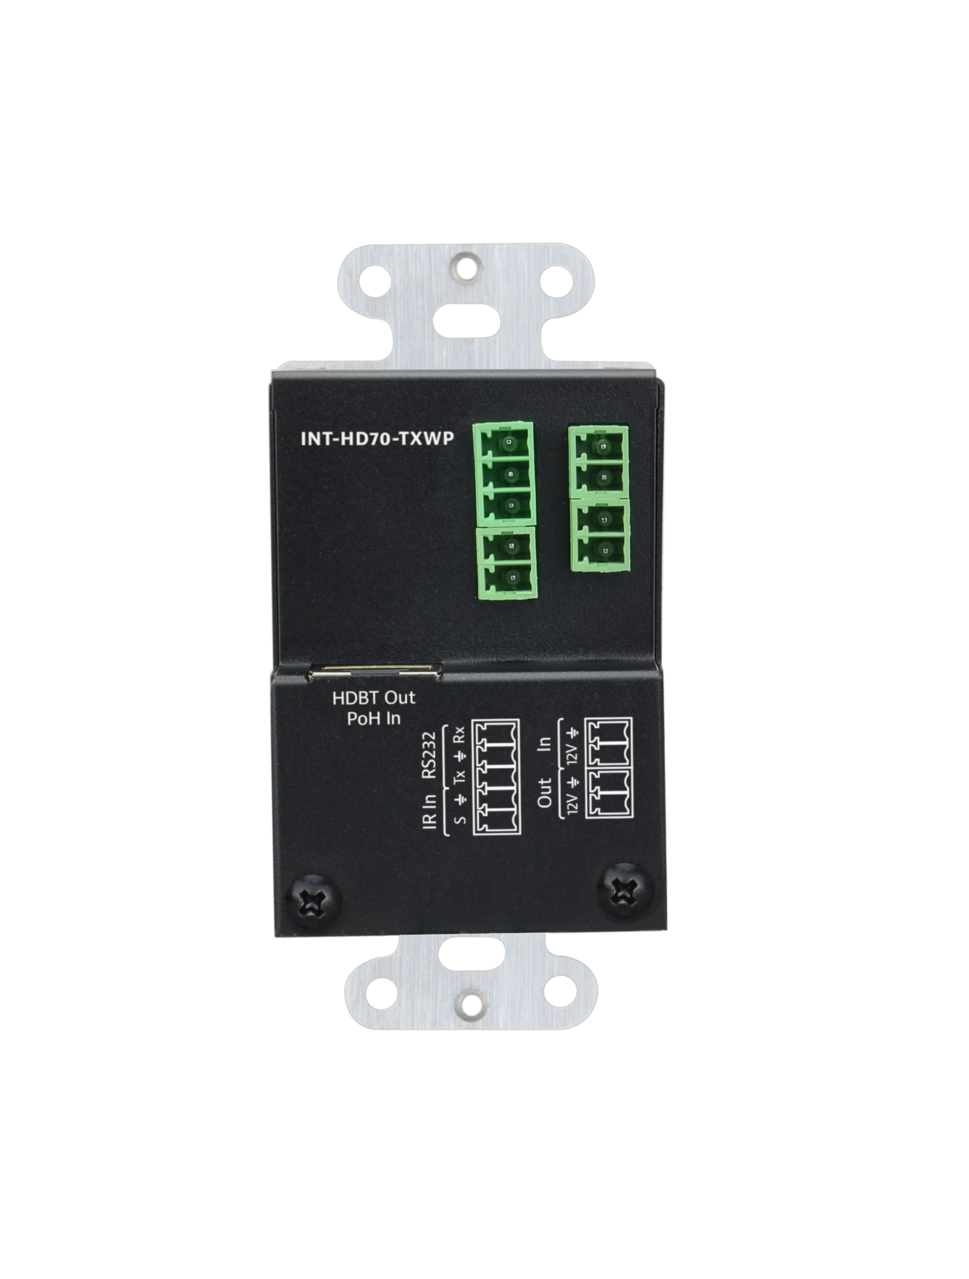 INT-HD70-TXWP - Intelix HDMI HDBaseT Wall Plate Transmitter